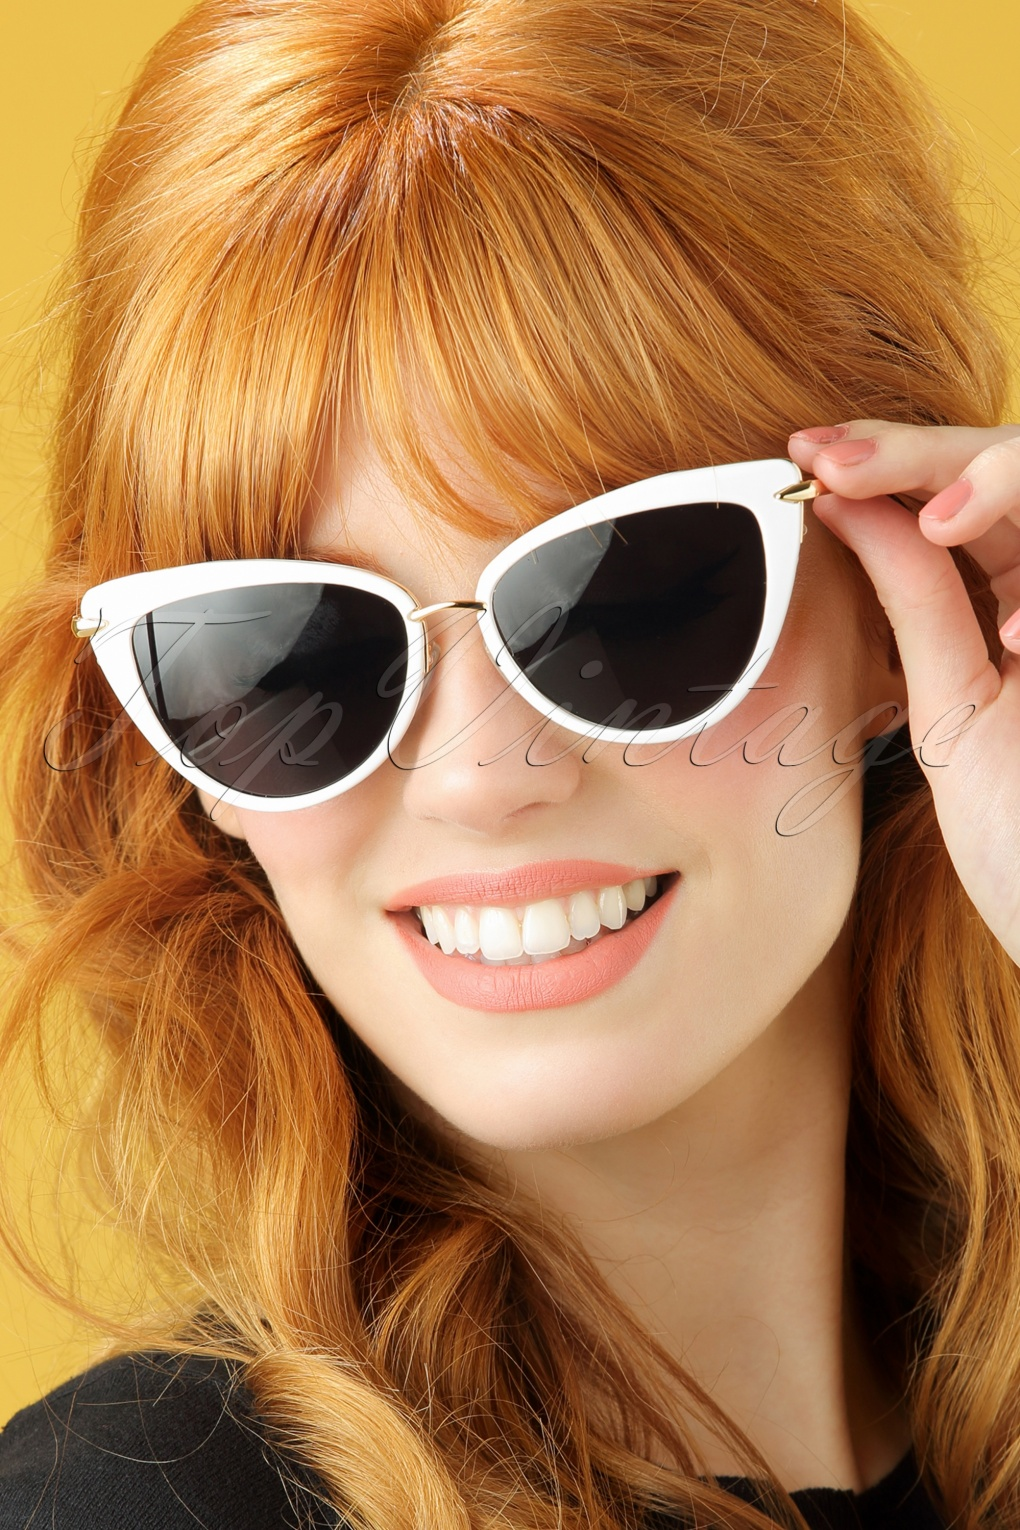 What Did Women Wear in the 1950s? 1950s Fashion Guide 50s Dita Cat Eye Sunglasses in White and Gold £16.28 AT vintagedancer.com